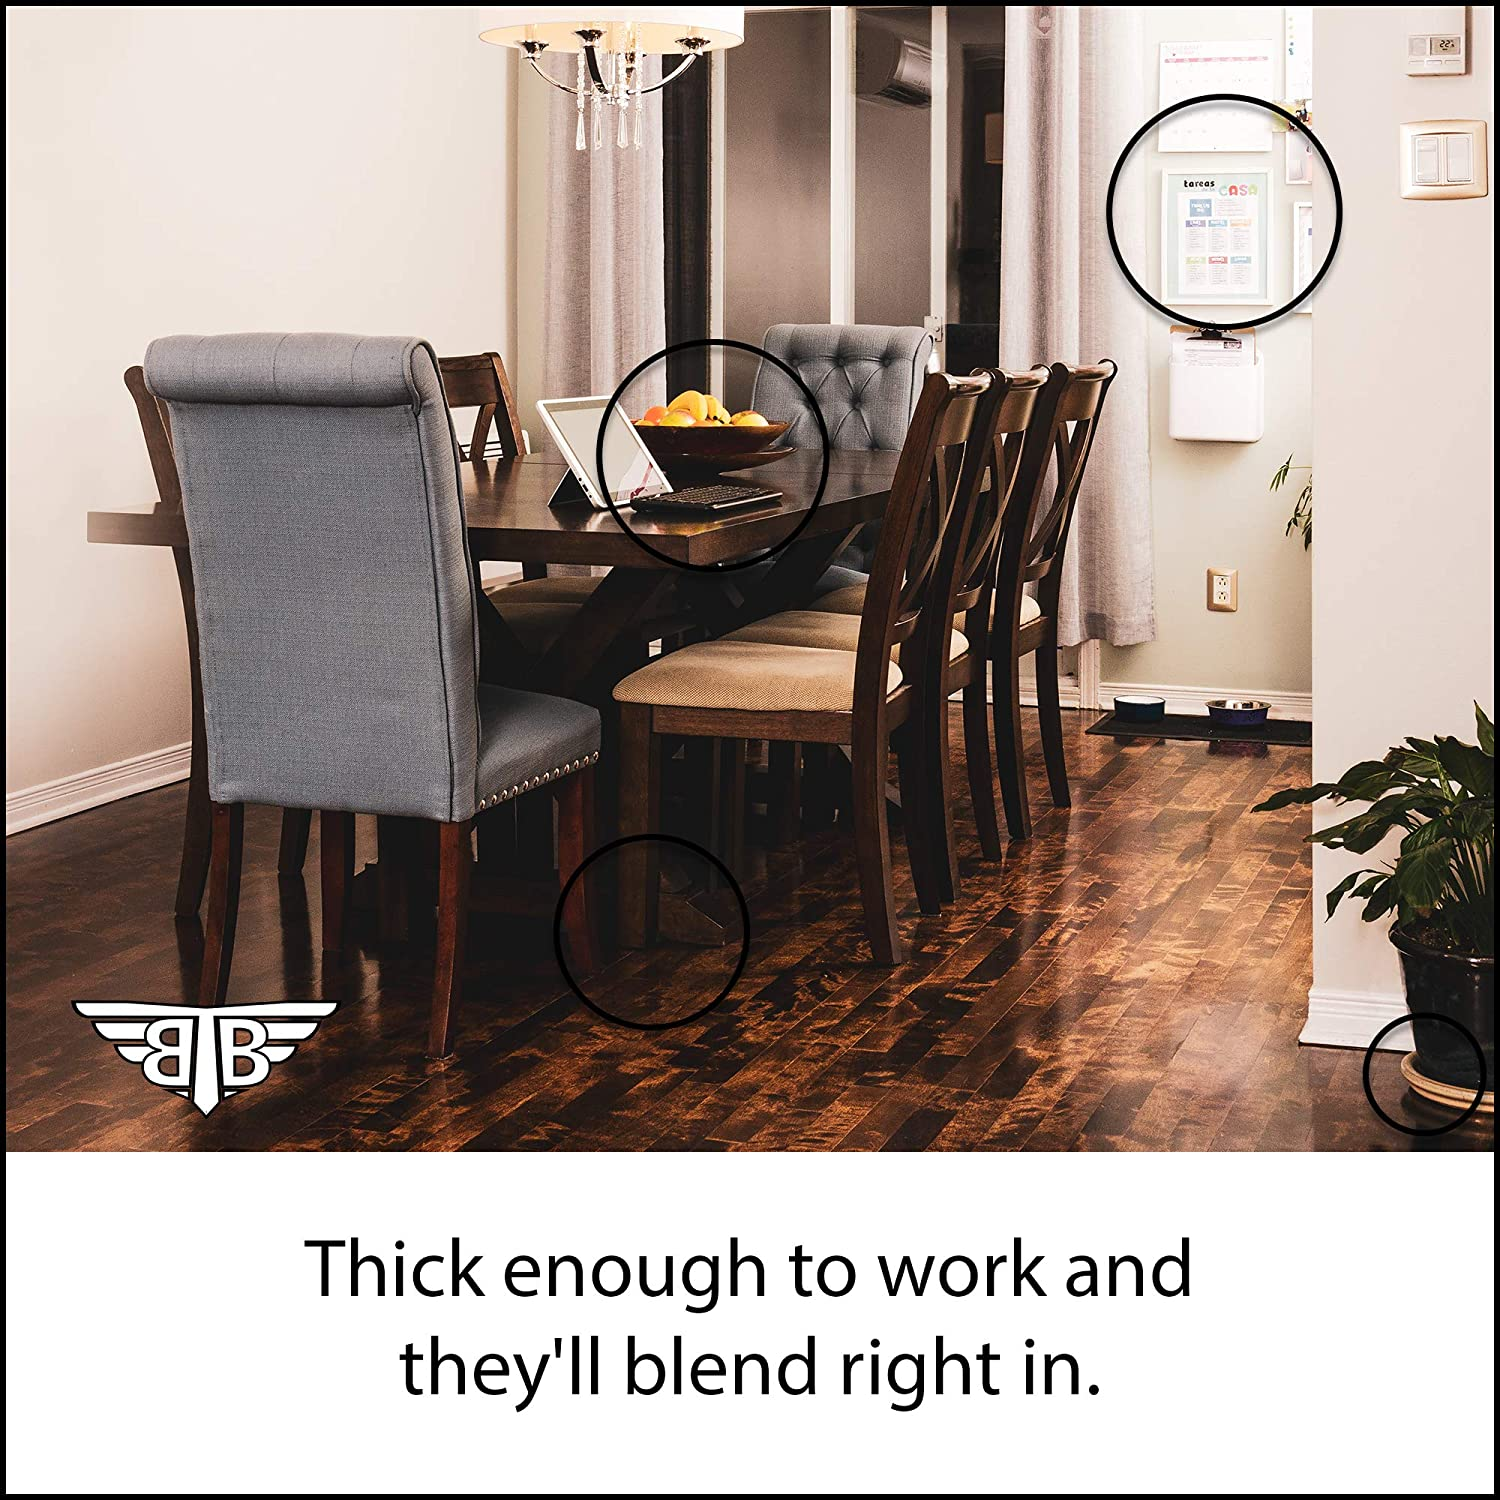 Proven Results 274pc MEGA Pack 2-Colors 8 Shapes /& Sizes Barb The Builder BTB-FP2018 Easy to Use Felt Furniture Pads for Hardwood Floors Effective Chair Leg Floor Protectors Protect Your Home from Scratches